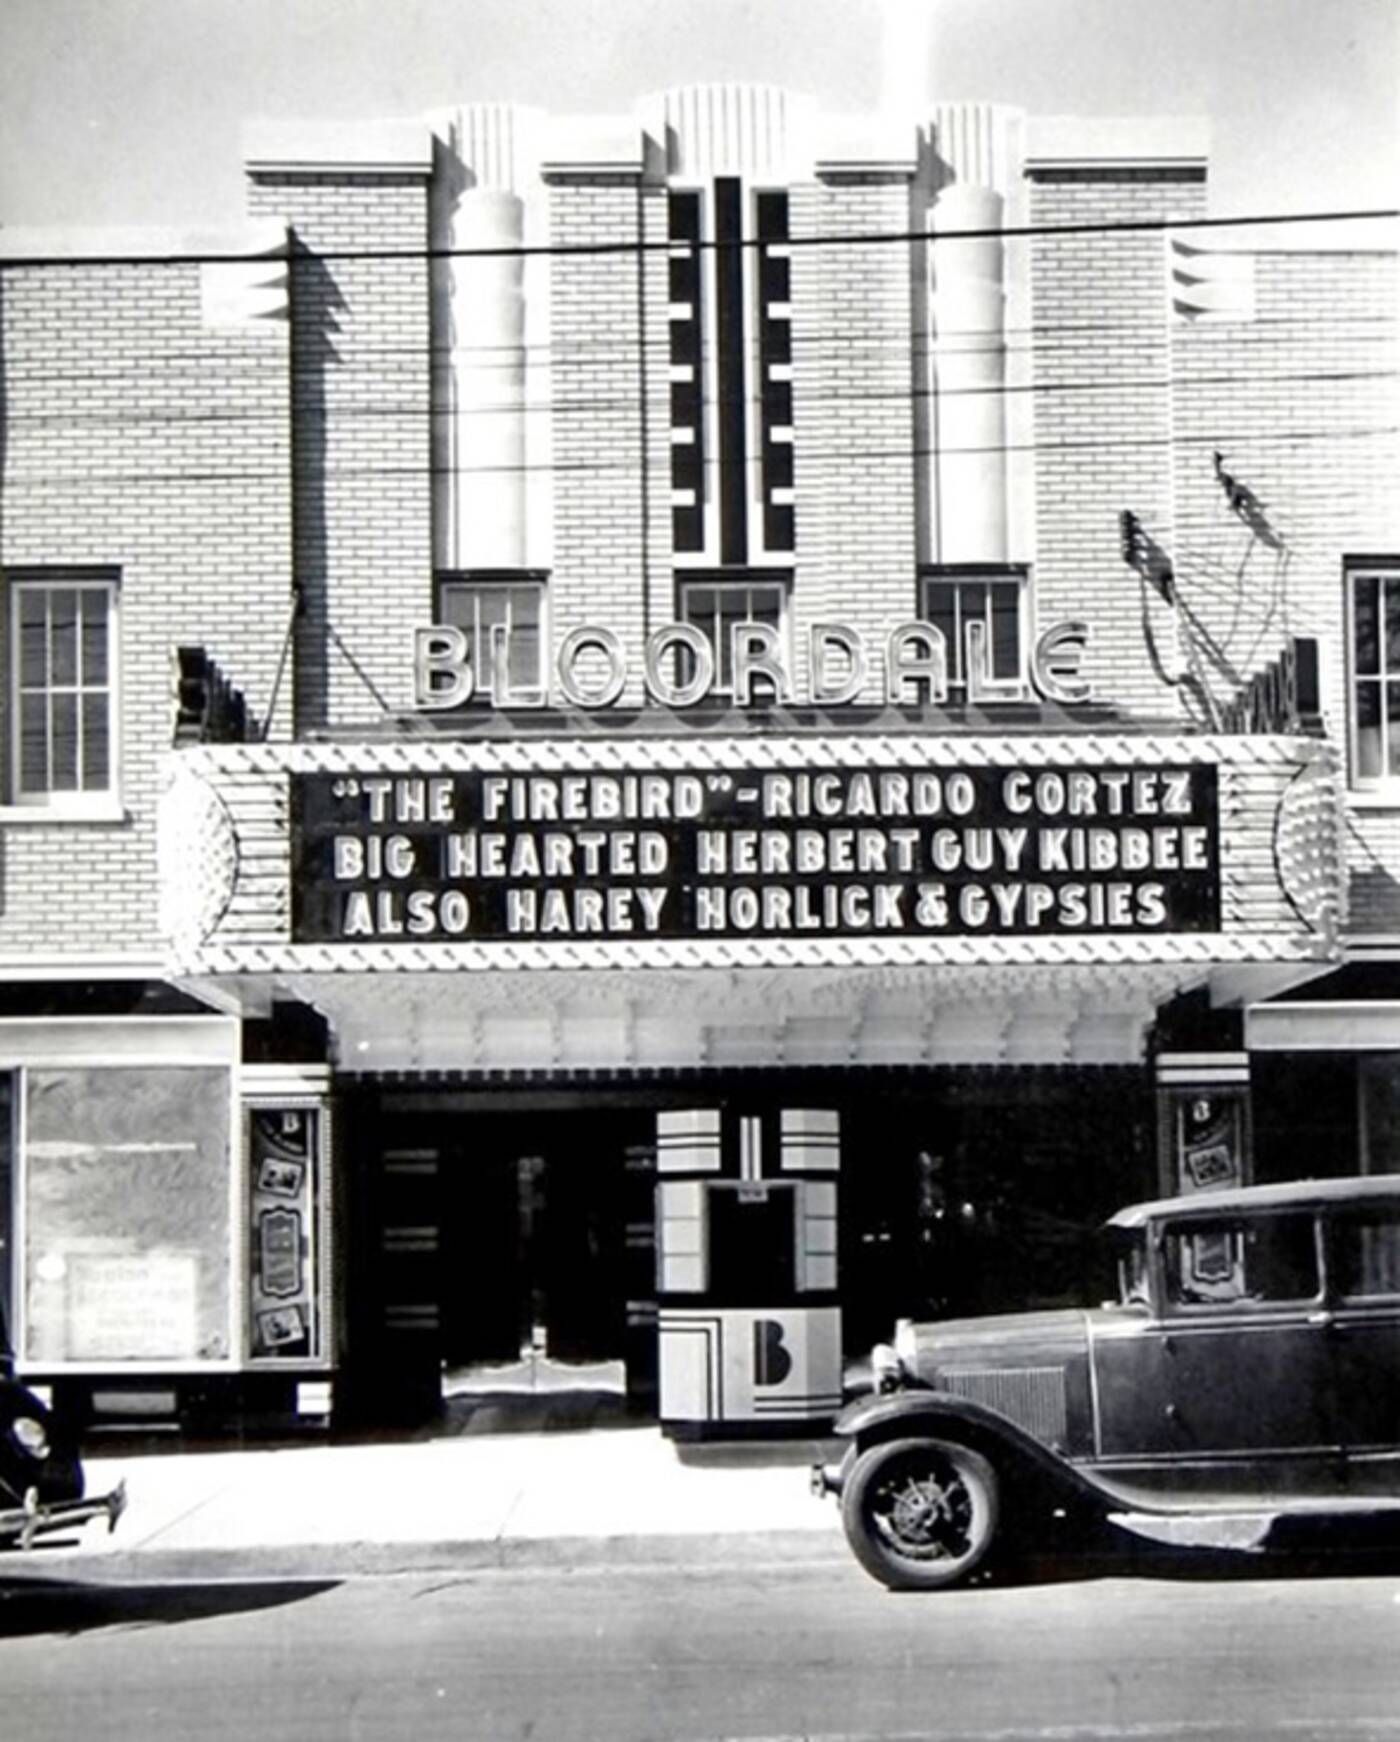 Bloordale Theatre